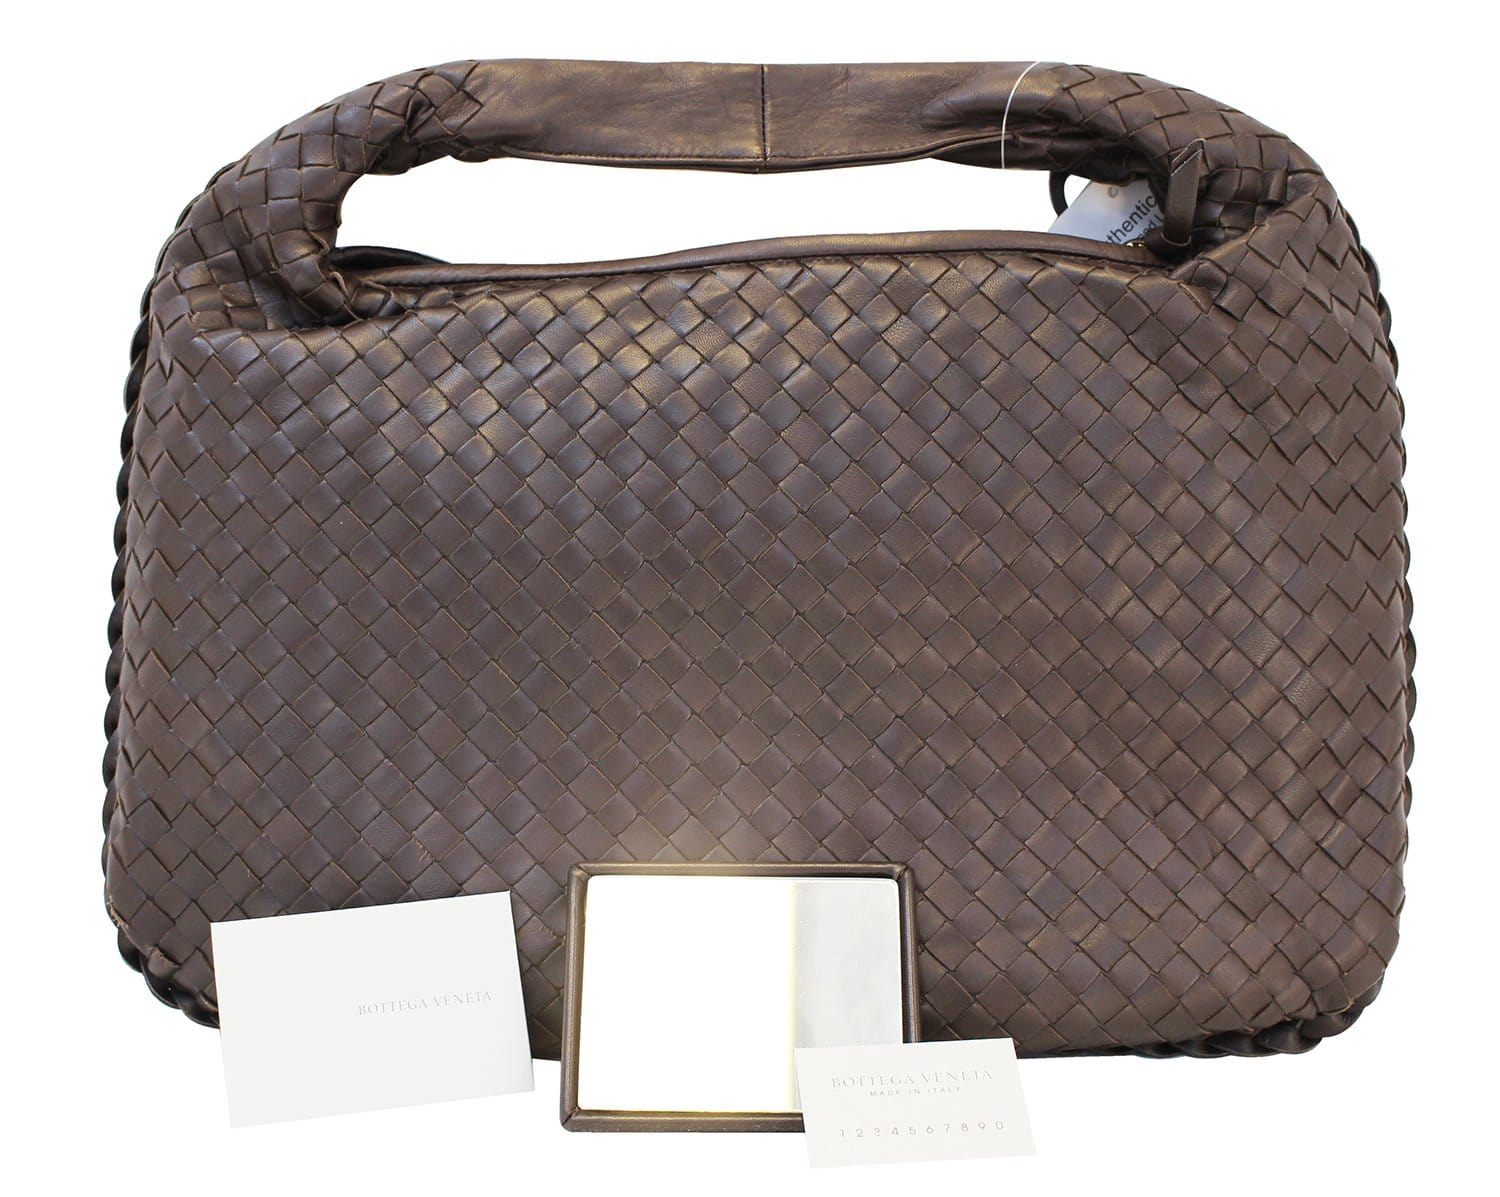 60202ceeb38 BOTTEGA VENETA Espresso Intrecciato Nappa Medium Veneta Hobo Bag - Fin